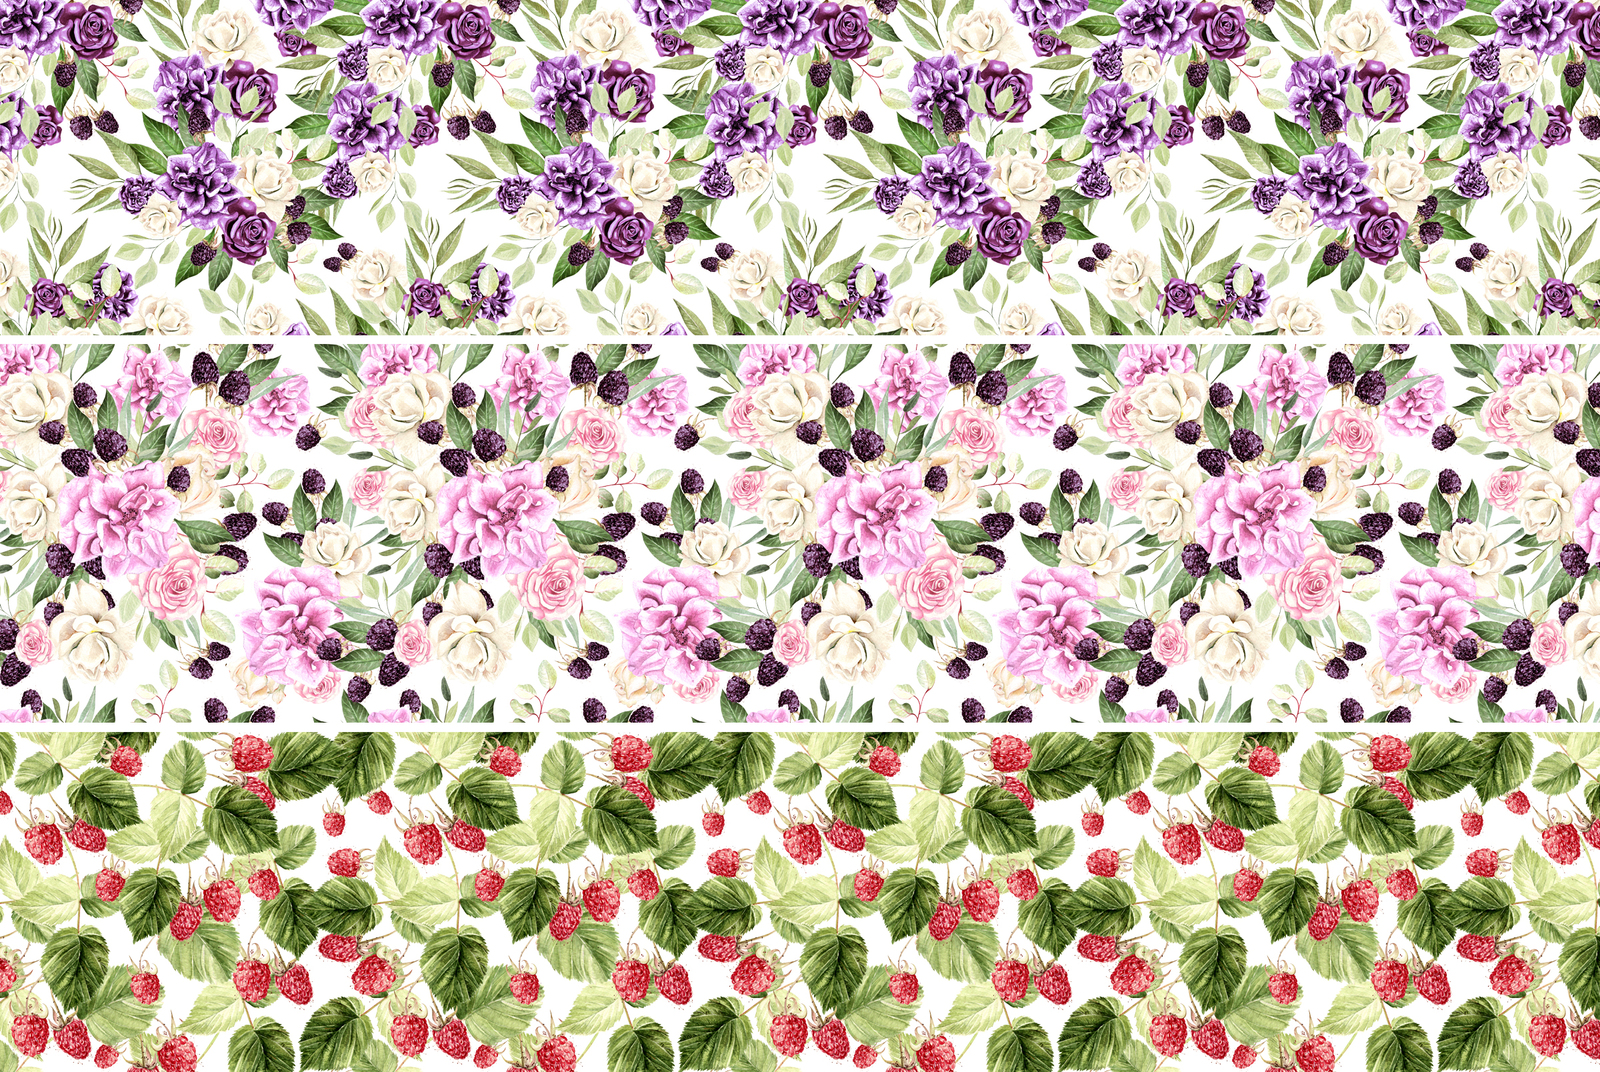 Hand Drawn Watercolor Flowers 64 PNG&VECTOR